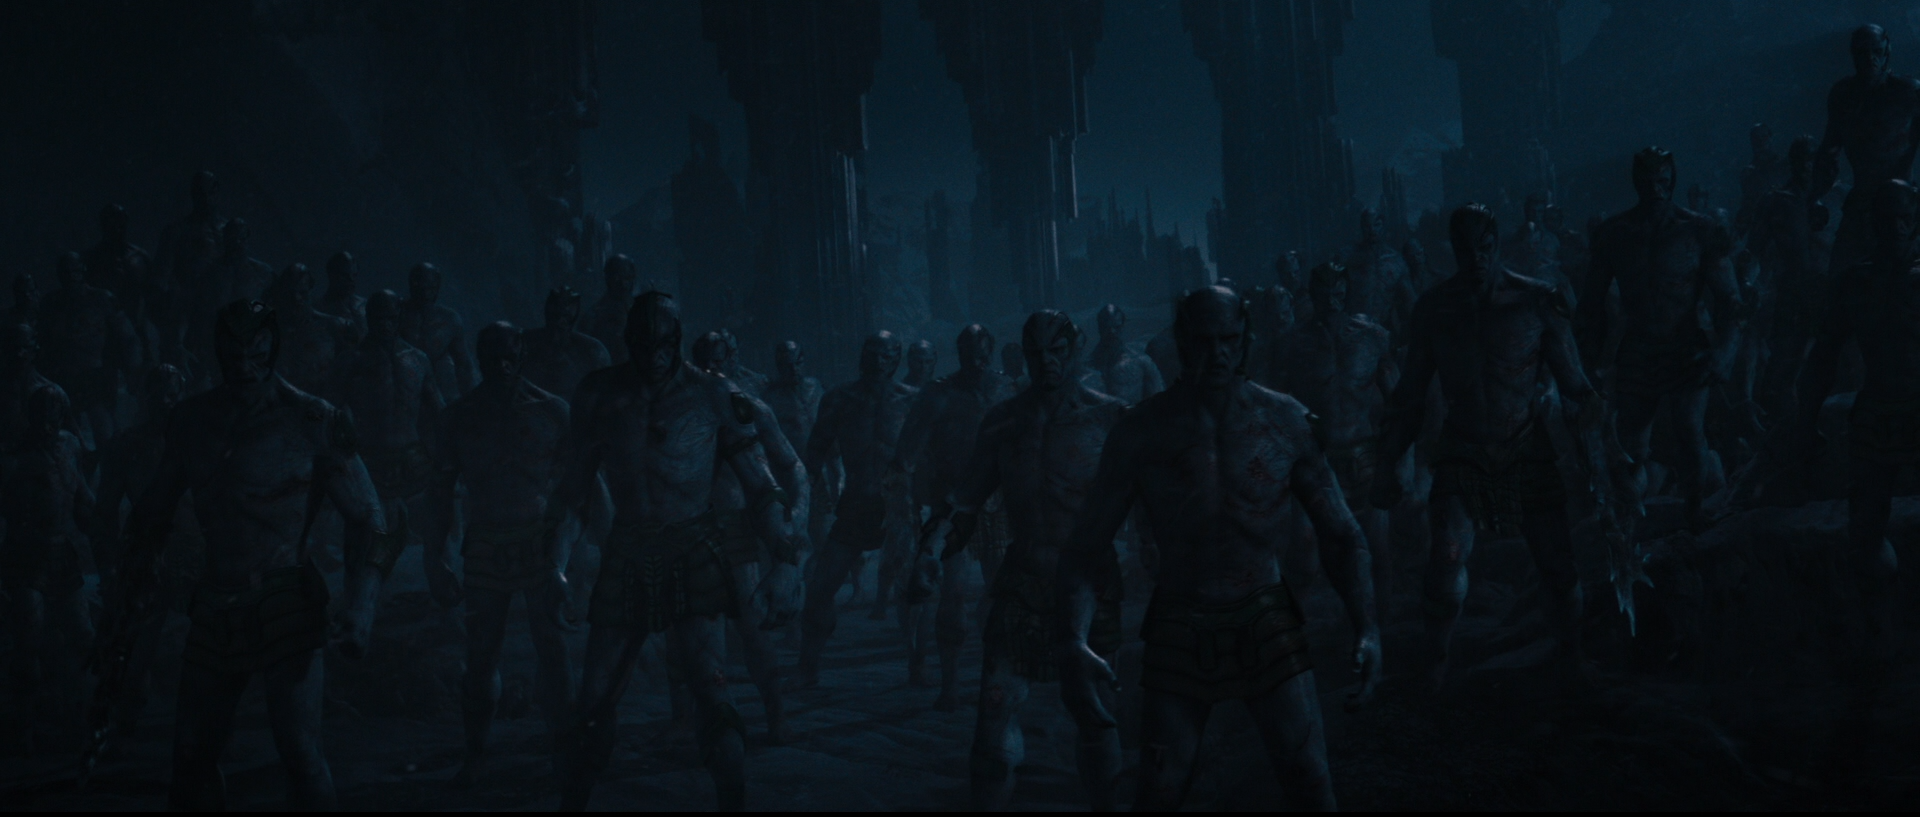 Frost Giants   Marvel Cinematic Universe Wiki   Fandom on thor beautiful planet, superman's home planet, spock's home planet, thor's home city, thor's home asgard, cartoon thor home planet,